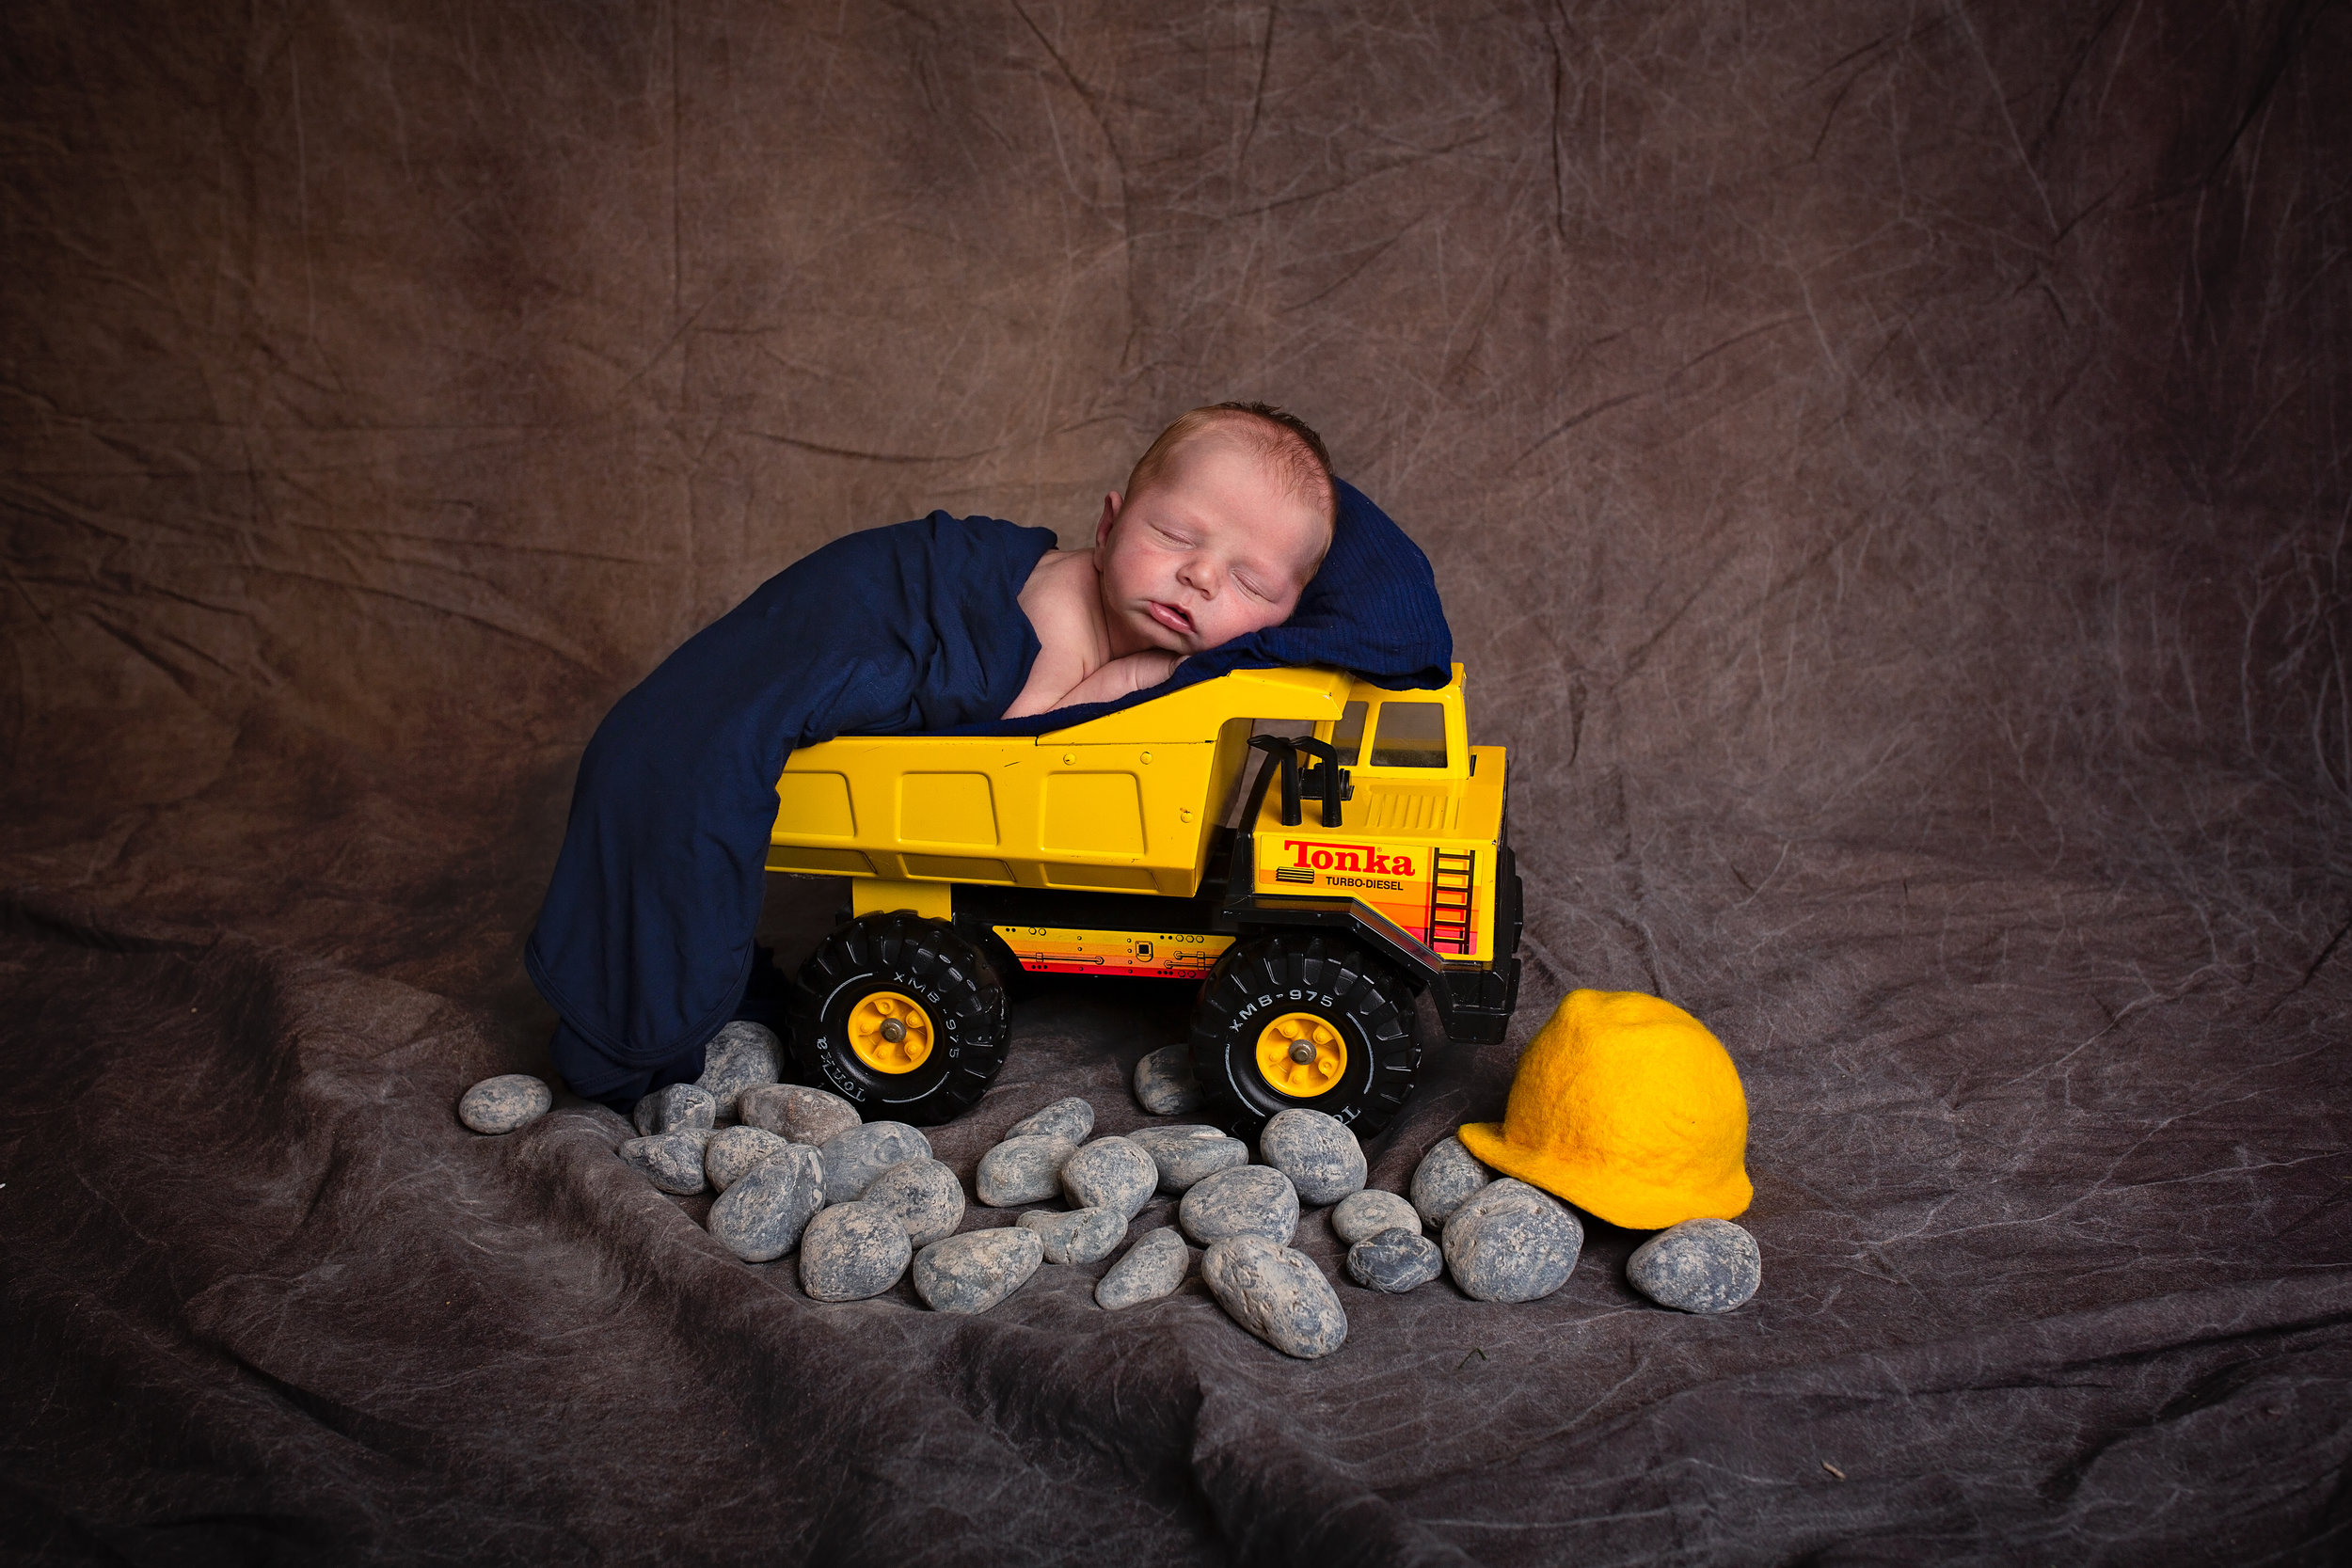 18_11_04 Melody Foster Newborn Session - Pryson29.jpg